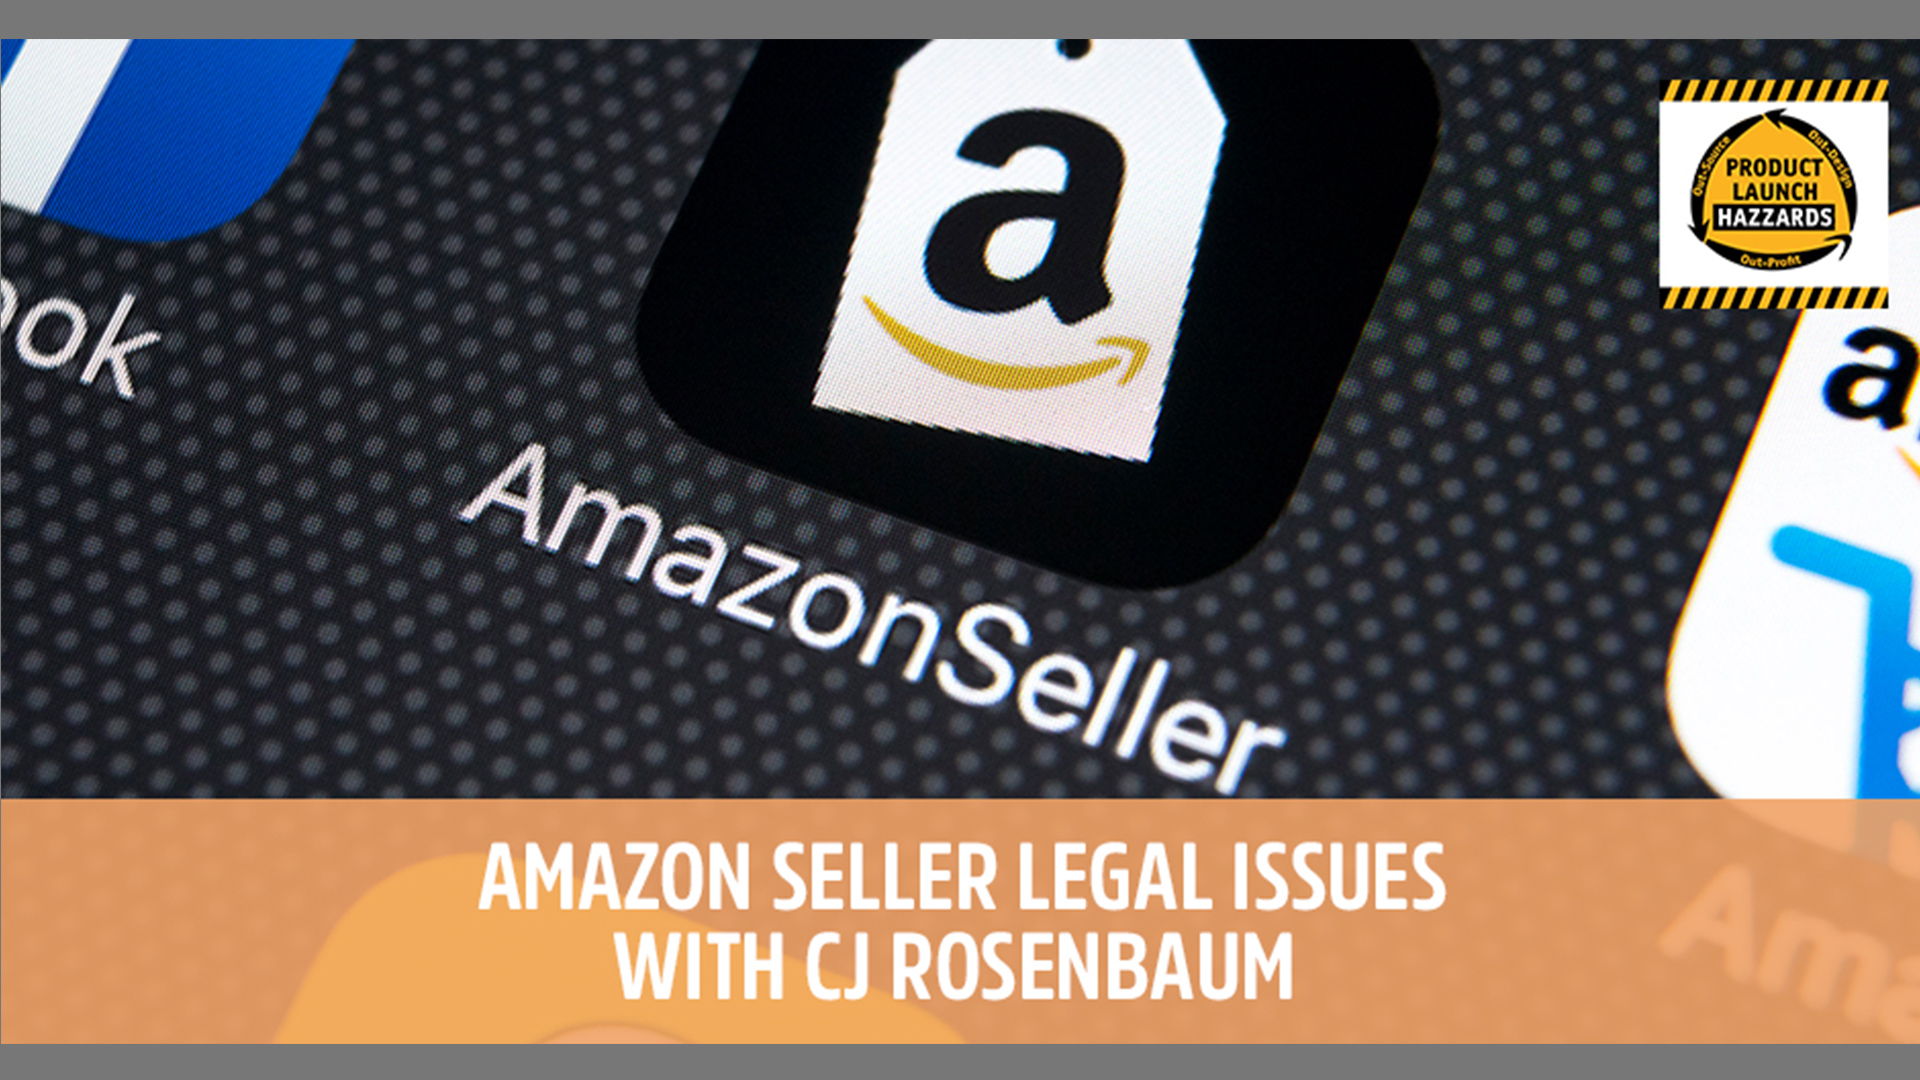 Amazon Seller Legal Issues with CJ Rosenbaum